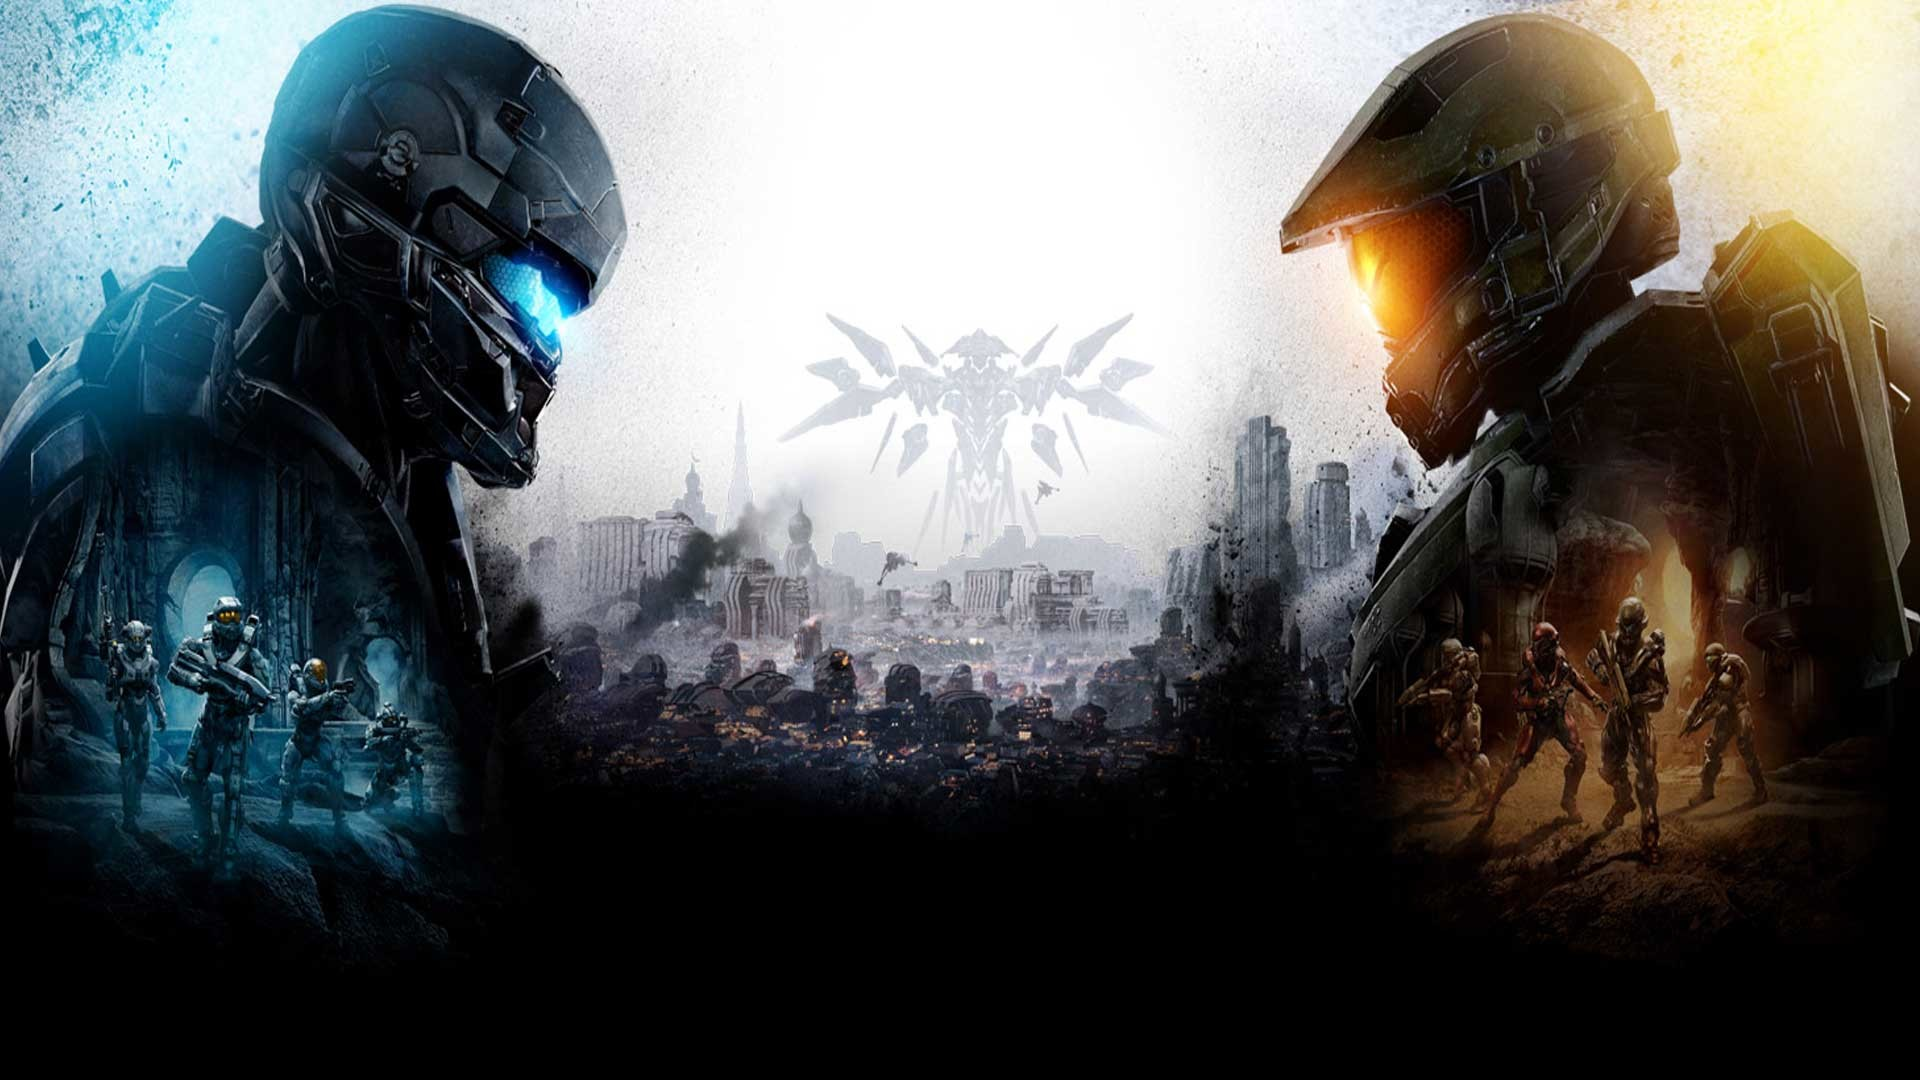 Master Chief Halo 5 Guardians wallpapers (54 Wallpapers)